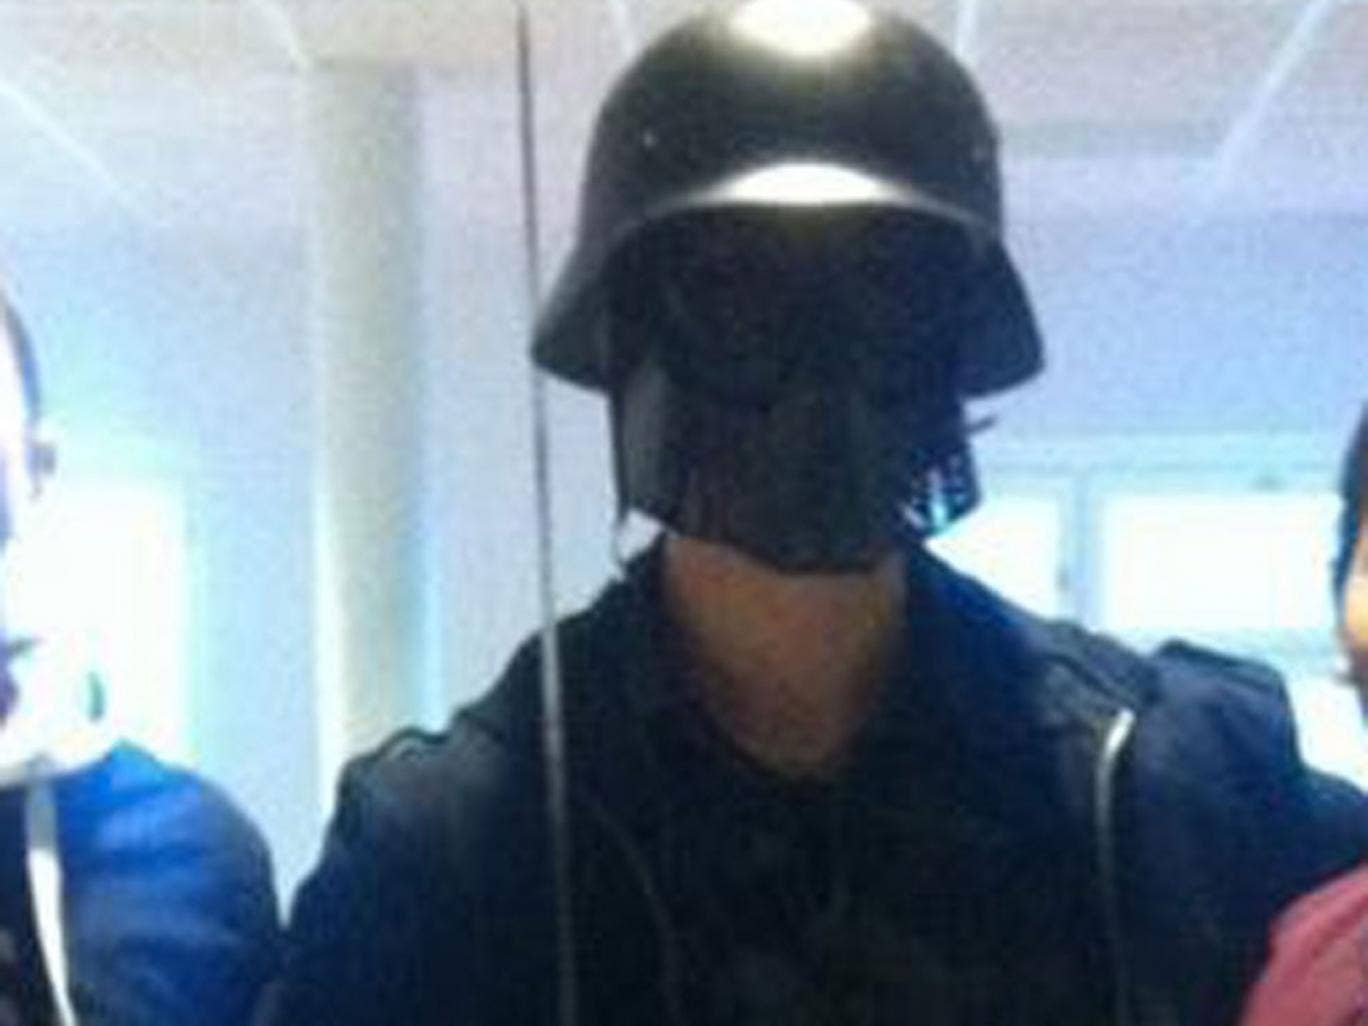 The killer wore a Darth Vader mask and carried a sword